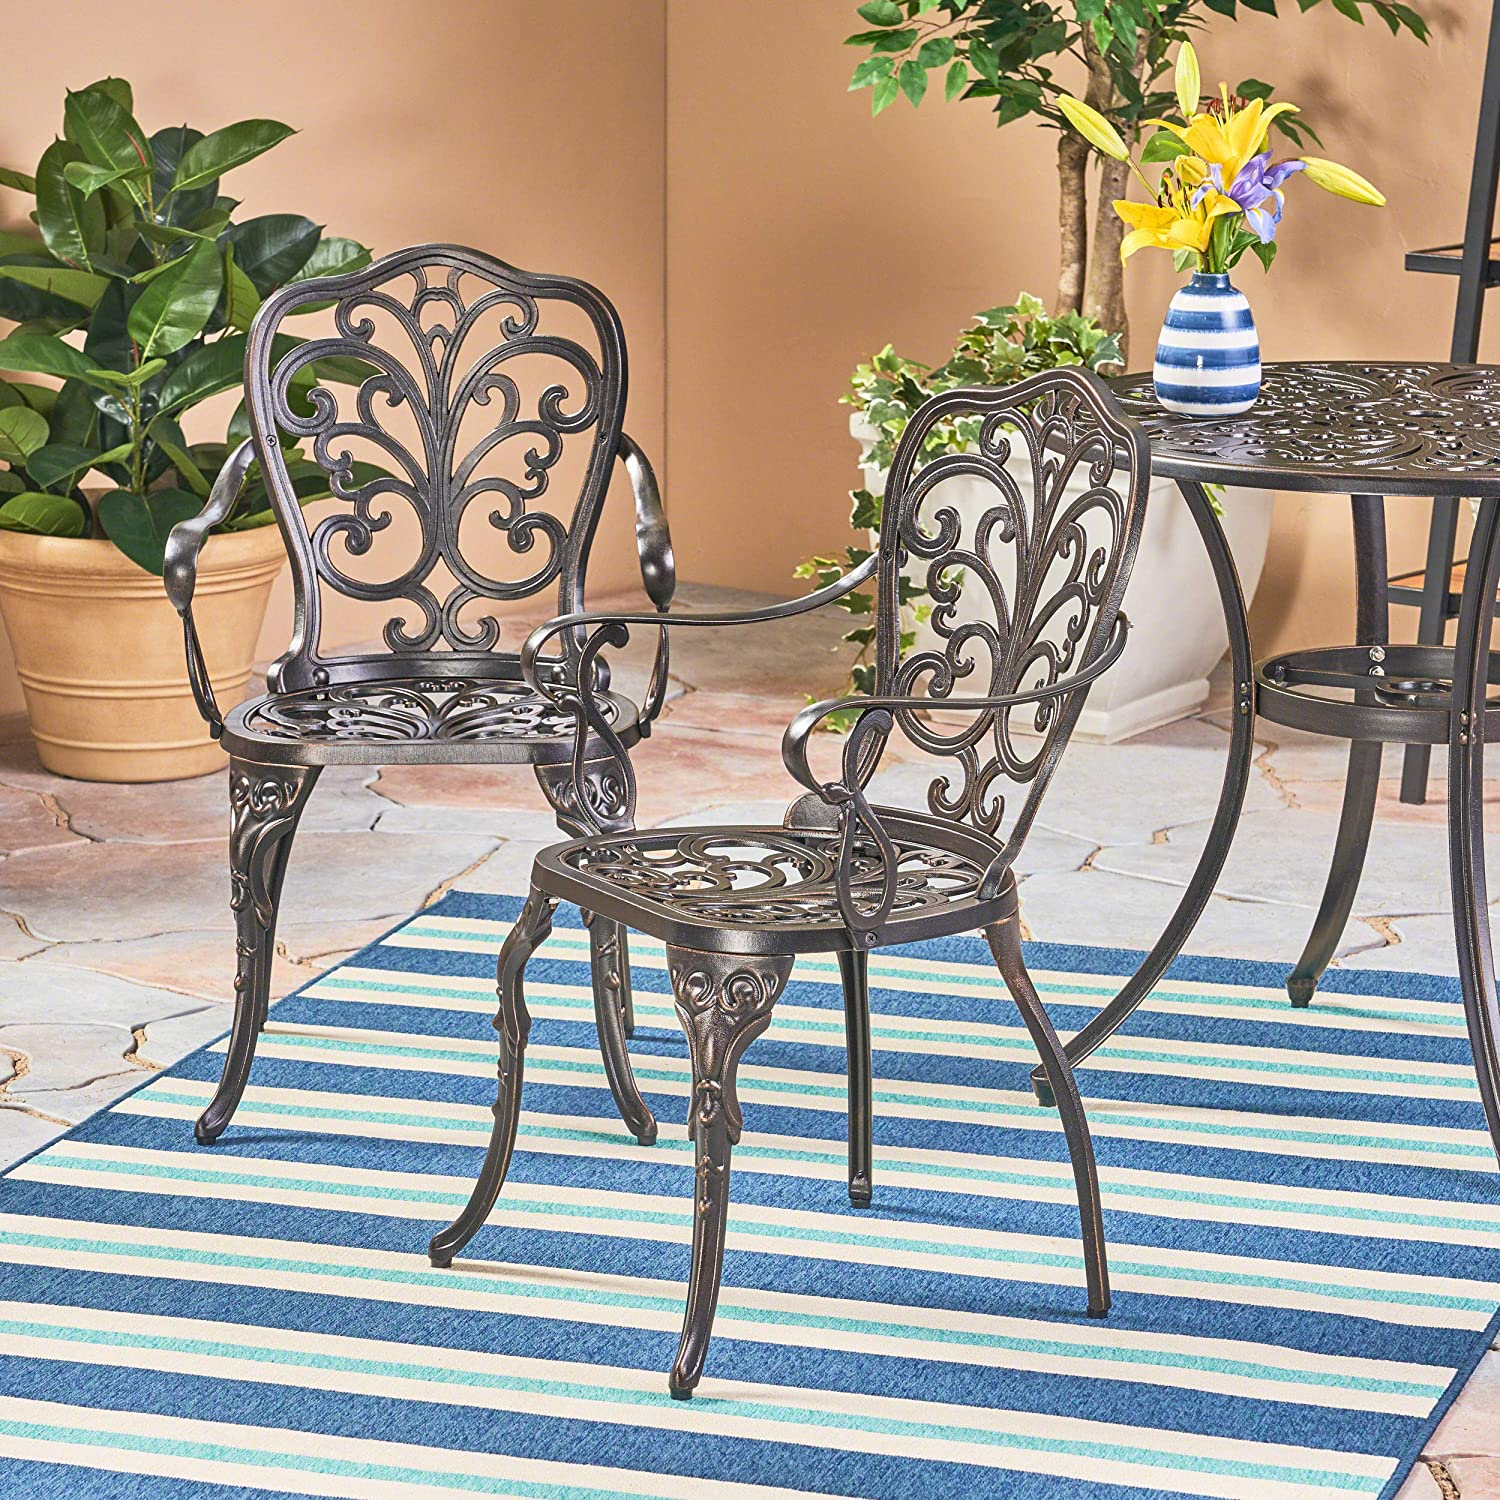 Christopher Knight Home 305324 Buddy Outdoor Cast Aluminum Dining Chair (Set of 2), Shiny Copper